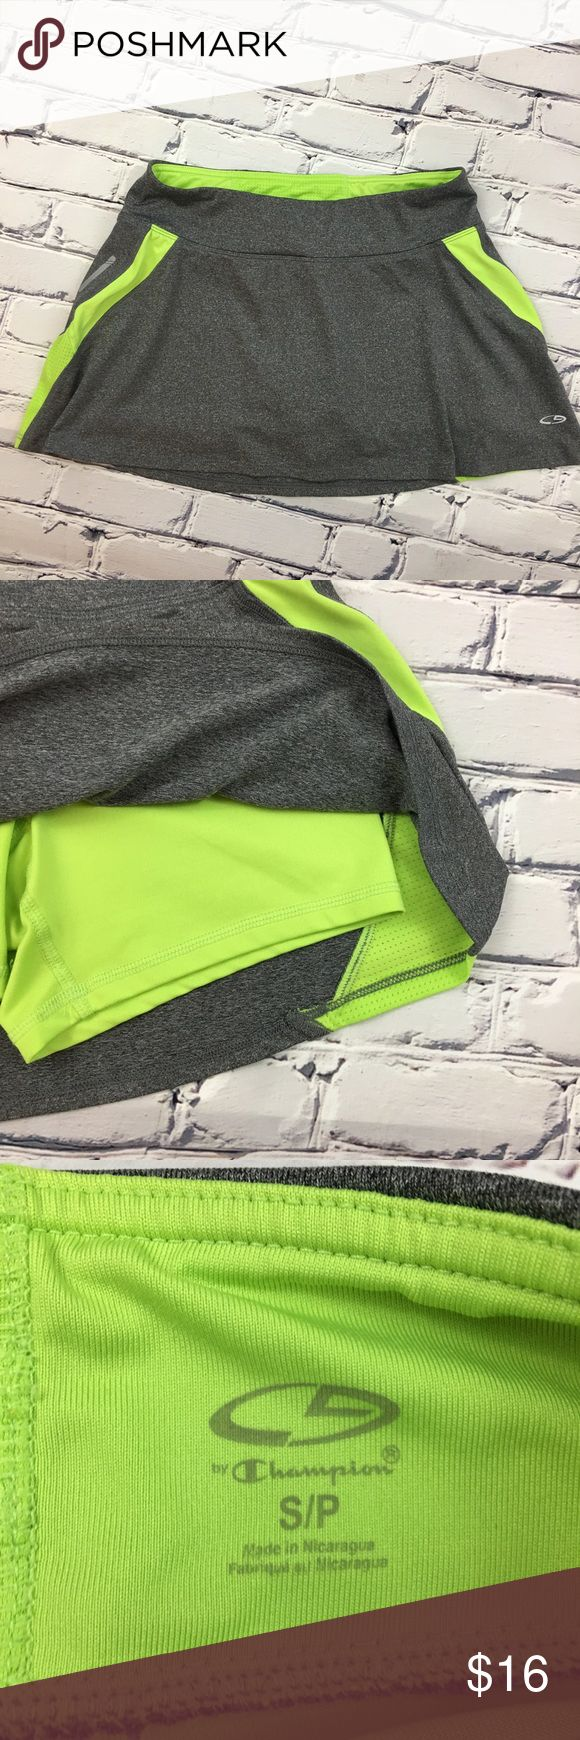 C9 by Champion Running/Tennis Skirt C9 by Champion Running/Tennis Skirt in Gray with Citron Green accent colors and compression shorts.  Pre-owned, excellent condition.  💚Size: Small/Petite C9 by Champion Skirts